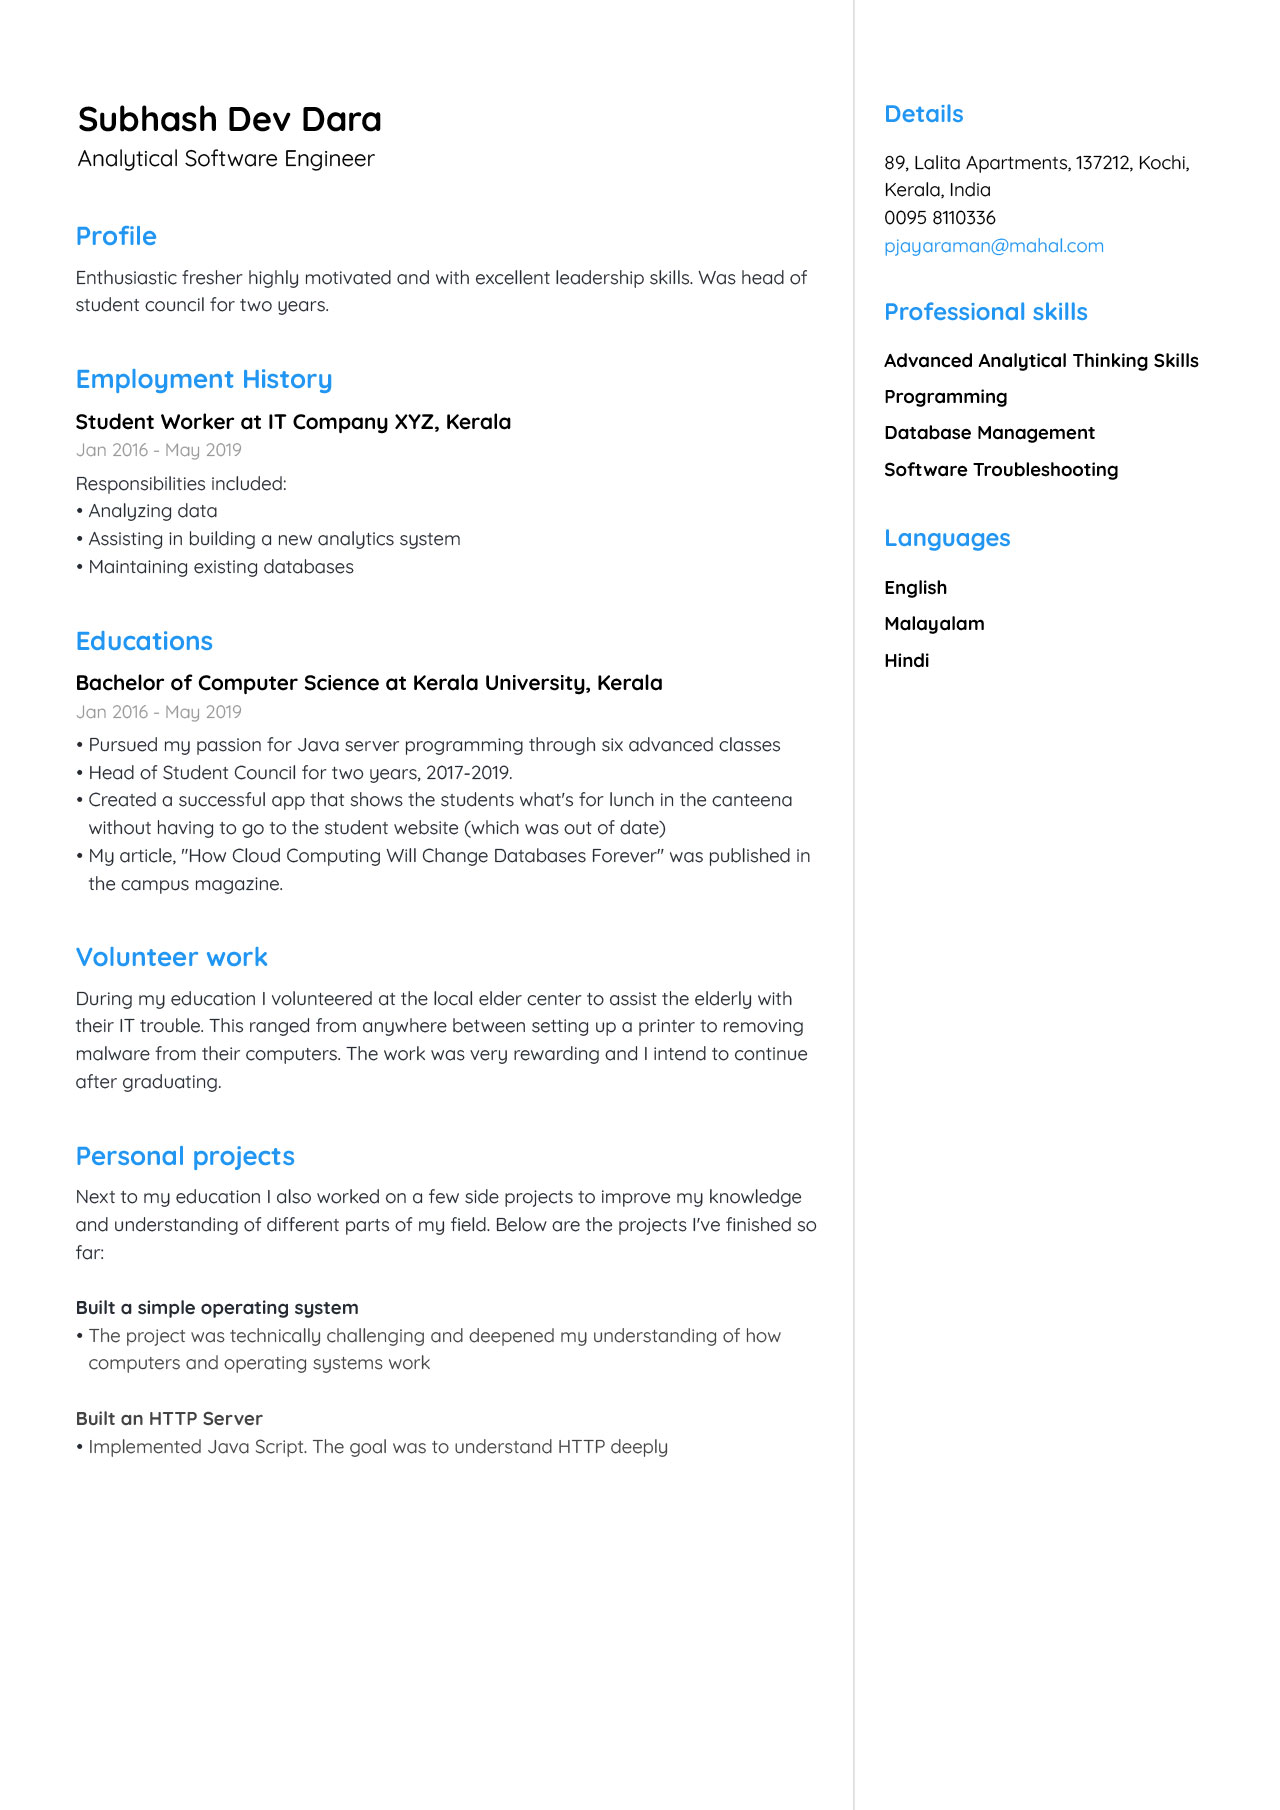 Analytical Software Developer Fresher CV example